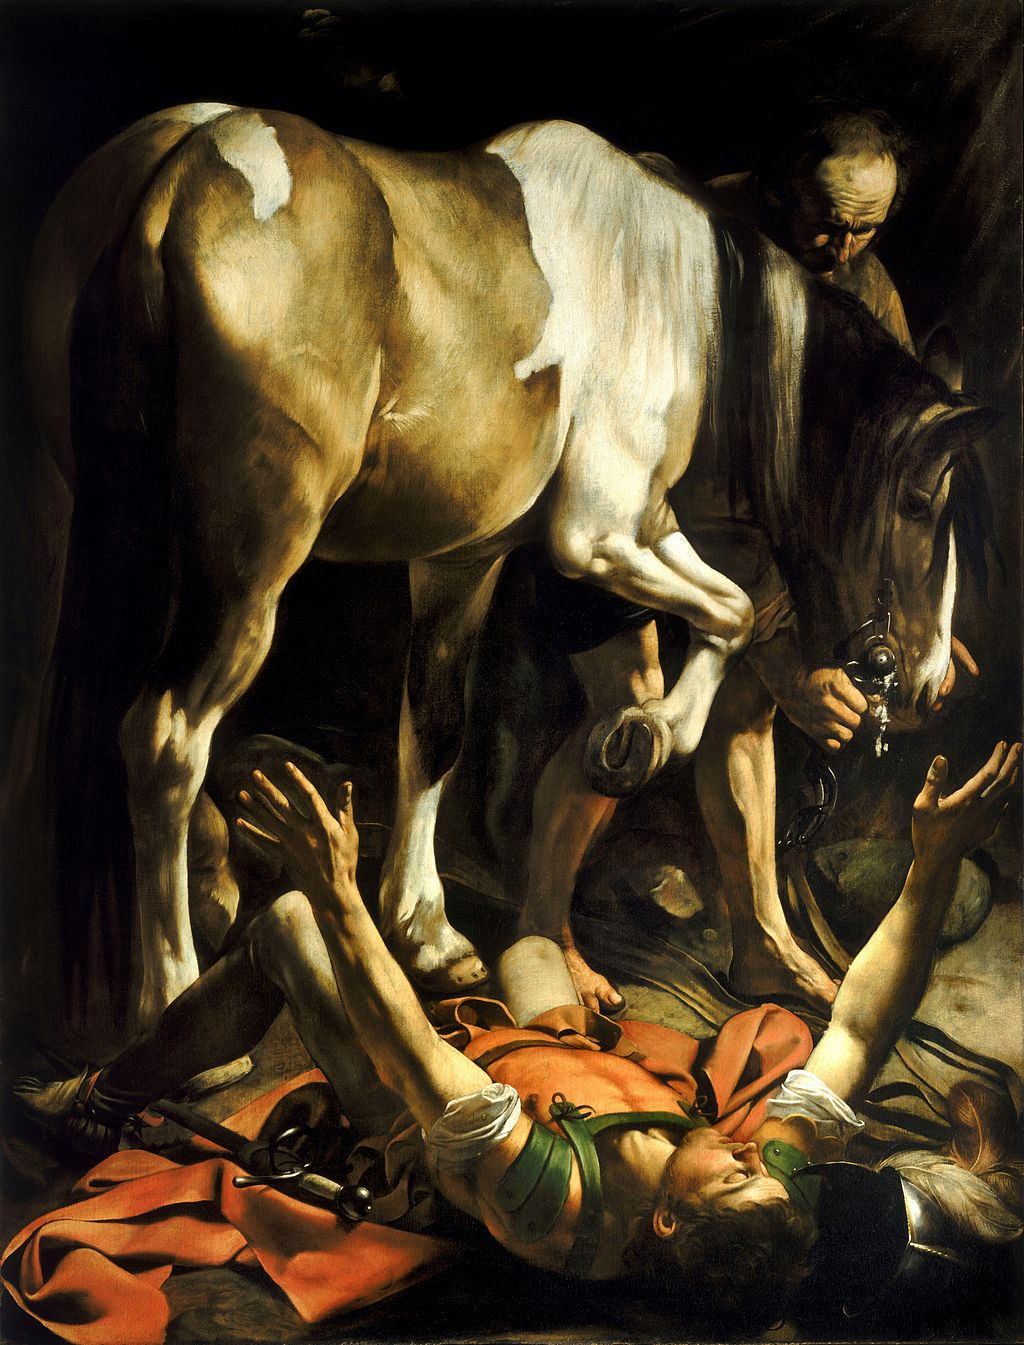 1024px-Conversion_on_the_Way_to_Damascus-Caravaggio_(c.1600-1)